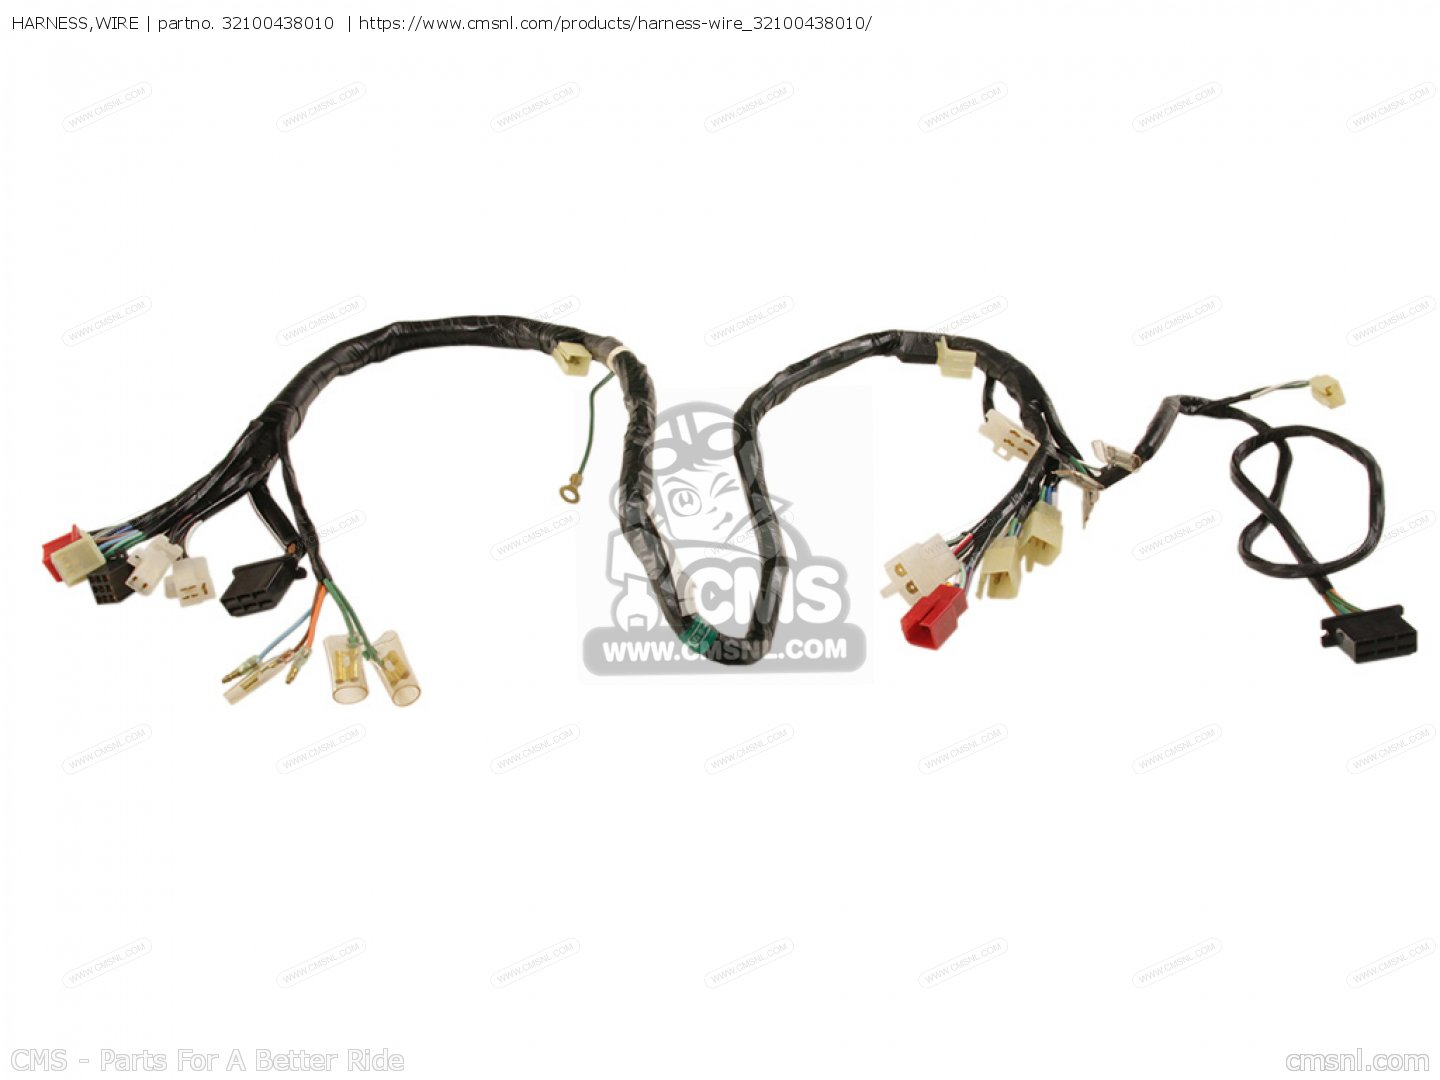 Harness Wire For Cb900f2c Bol D Or